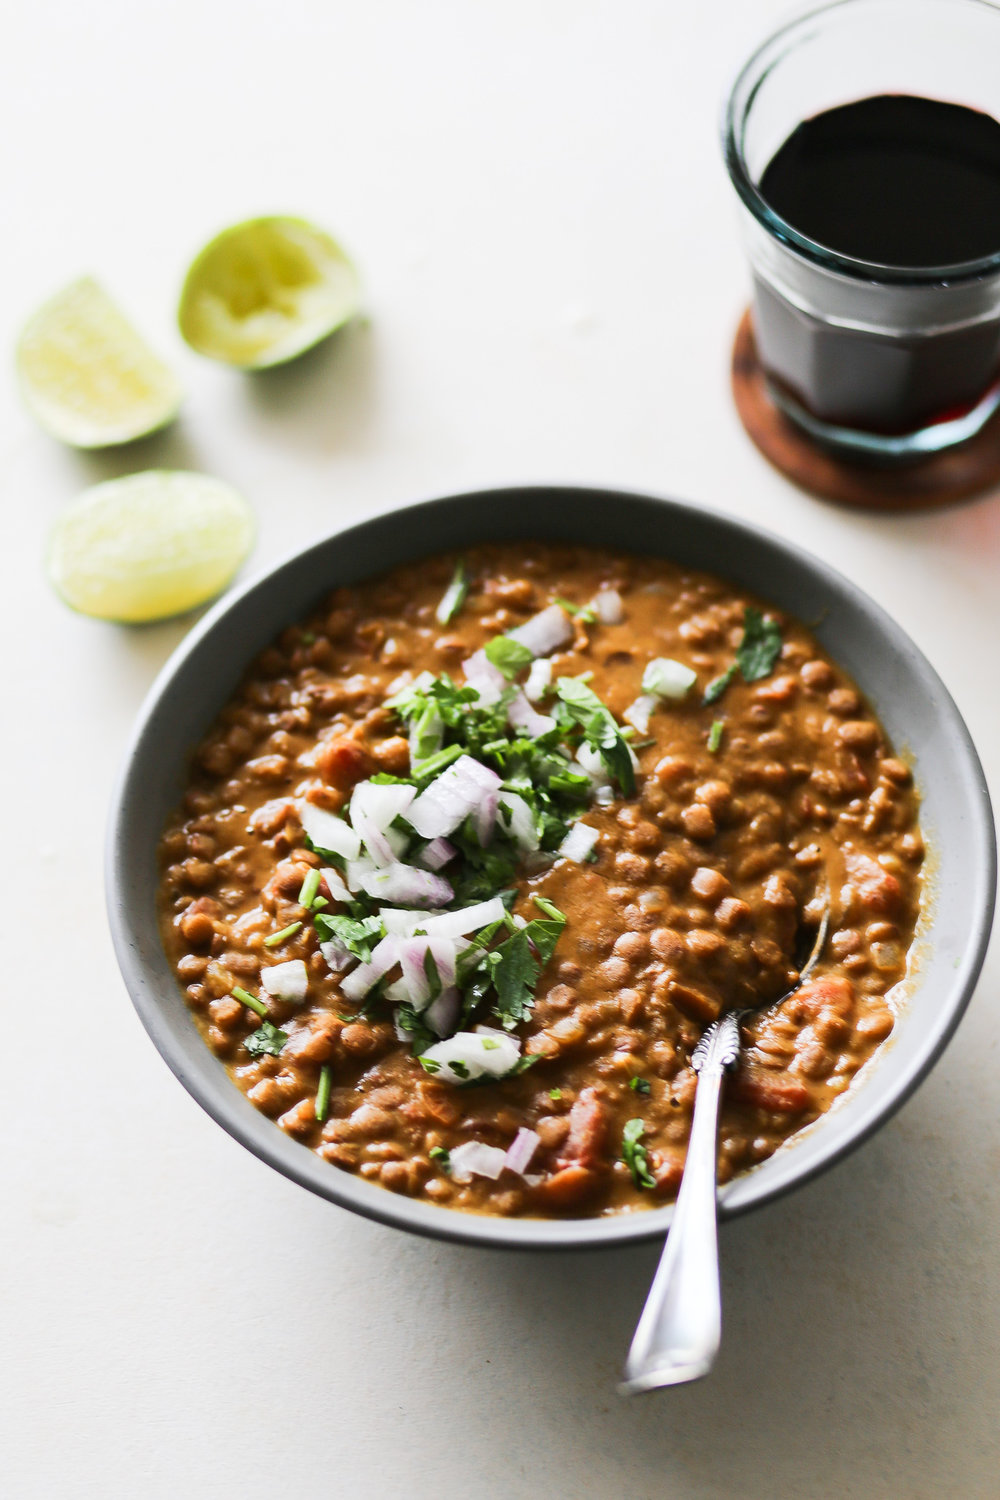 Instant Pot Curried Pumpkin & Lentil Soup | Set the Table #instantpot #recipe #curry #lentils #lentilsoup #easymeals #healthyeating #healthylunchrecipe